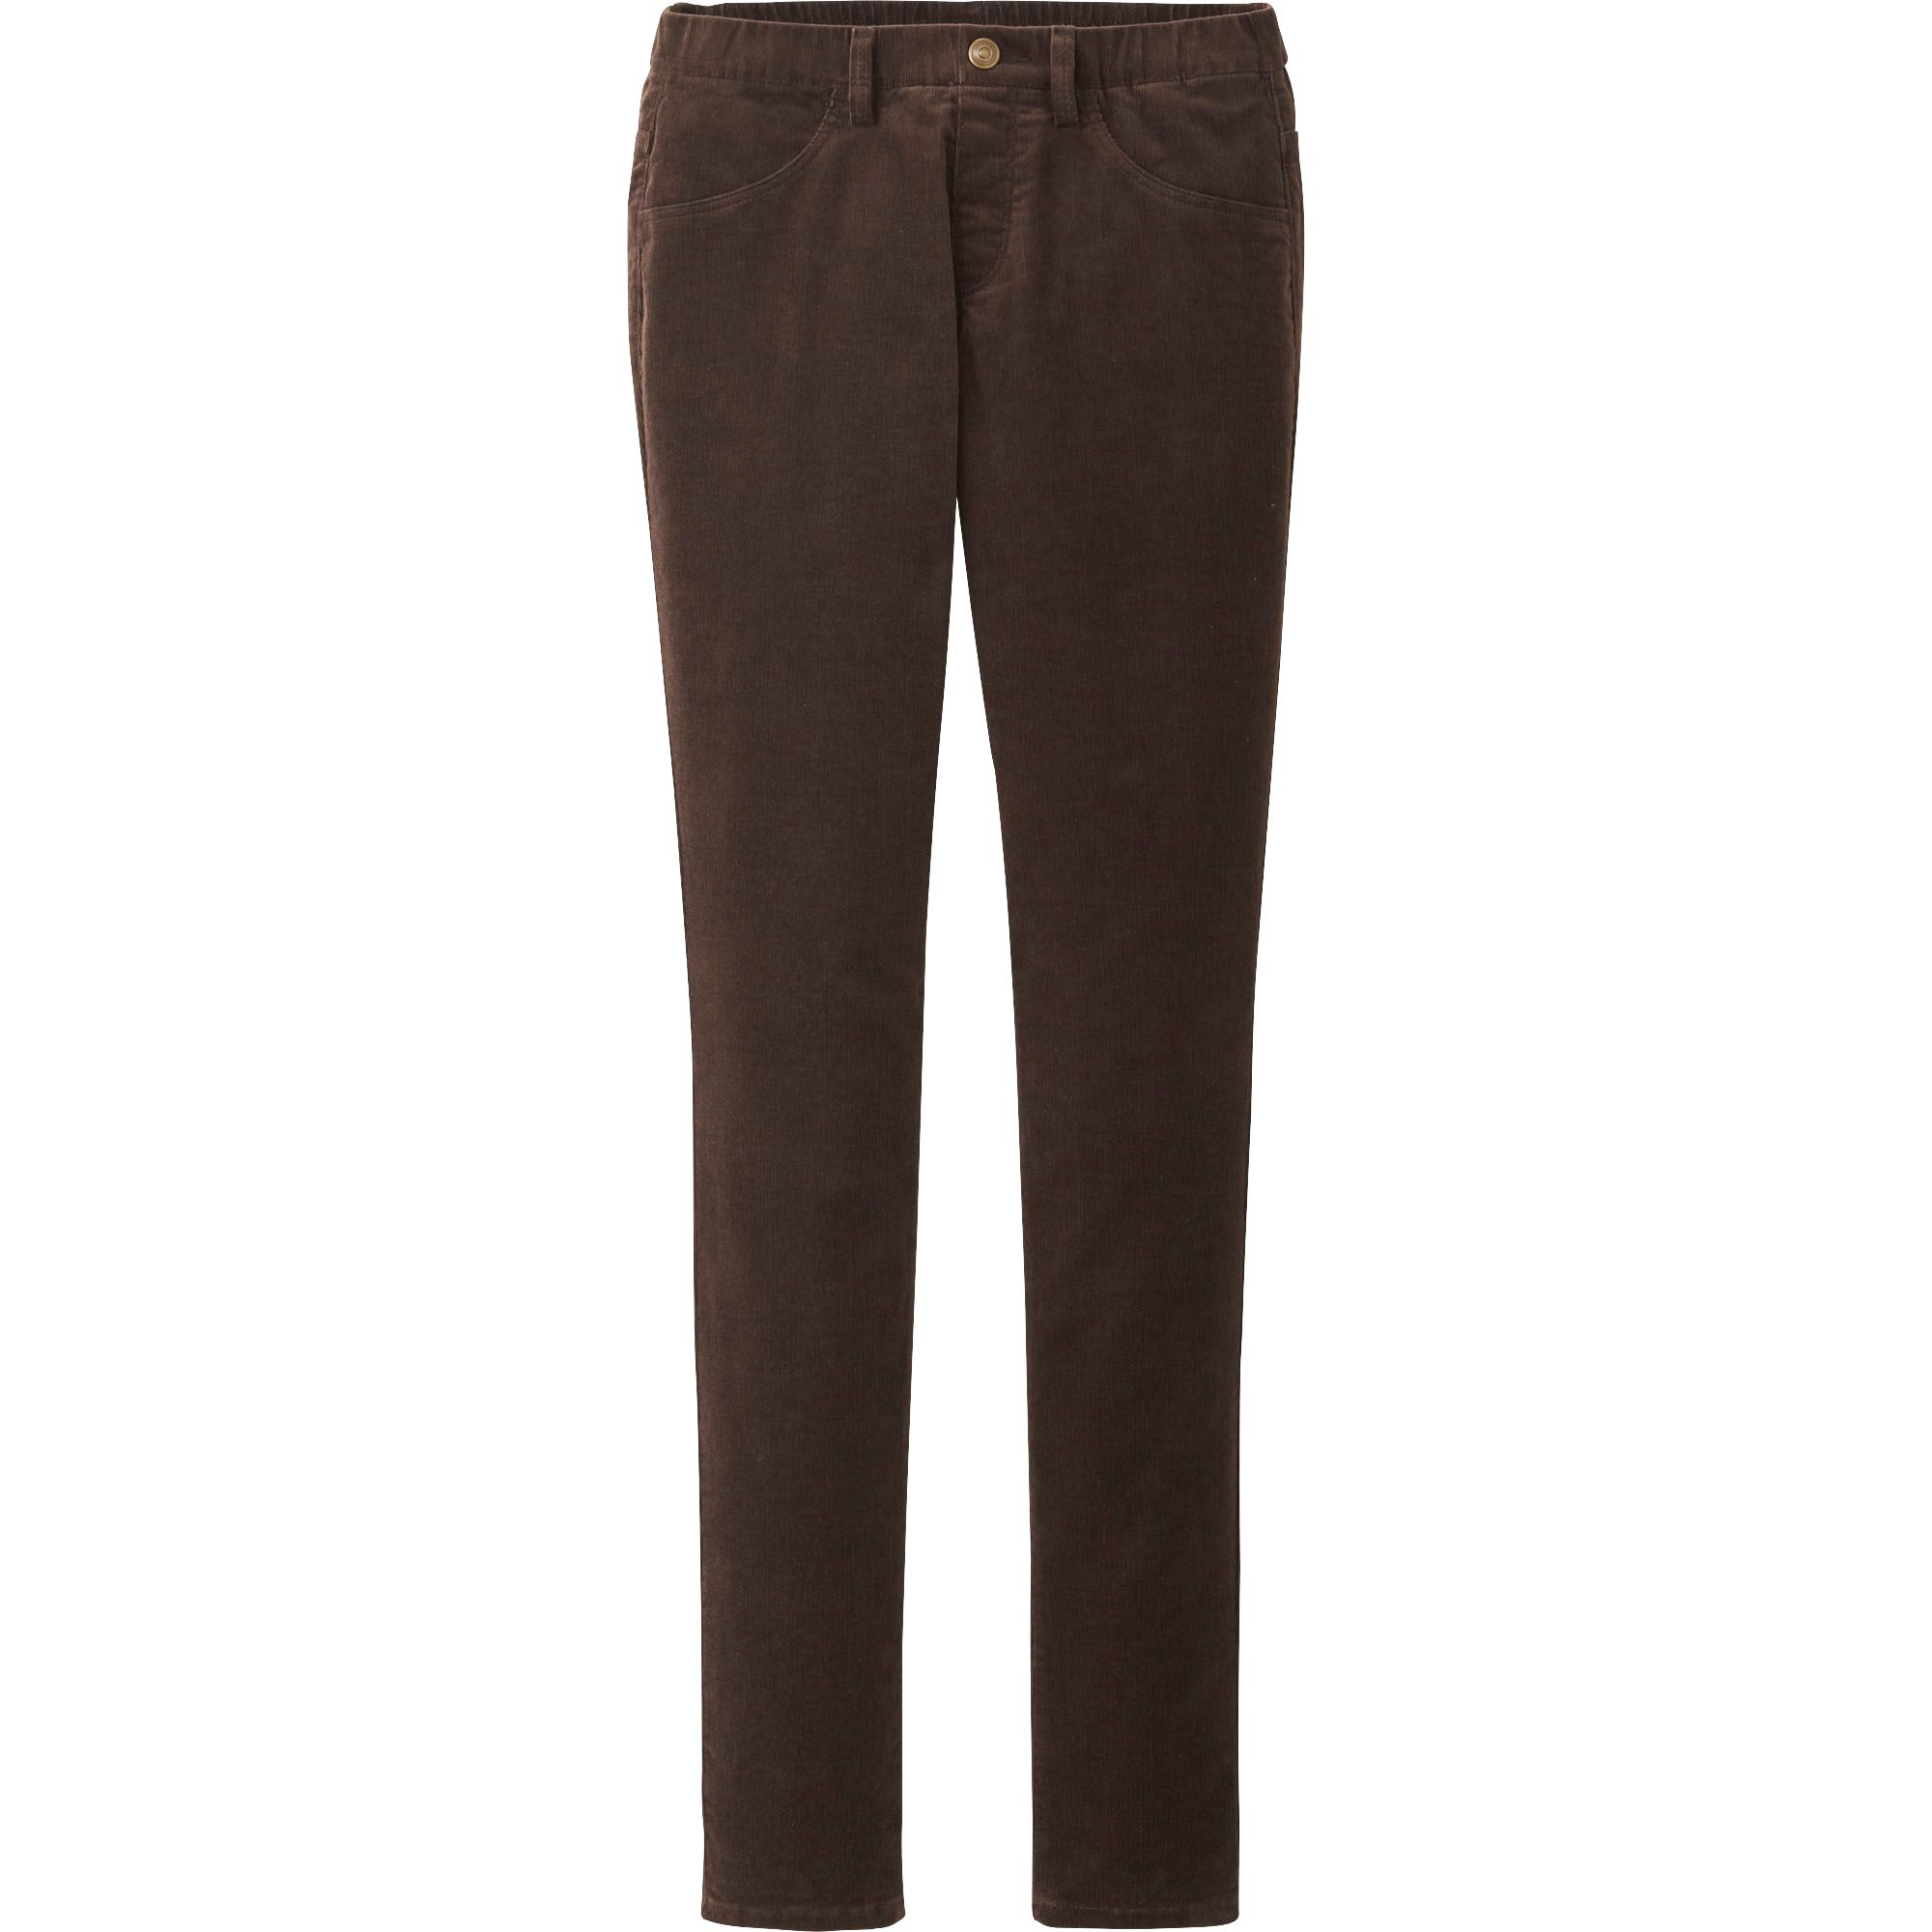 Awesome Women39s Dark Brown Pants From Macy39s  Women39s Fashion